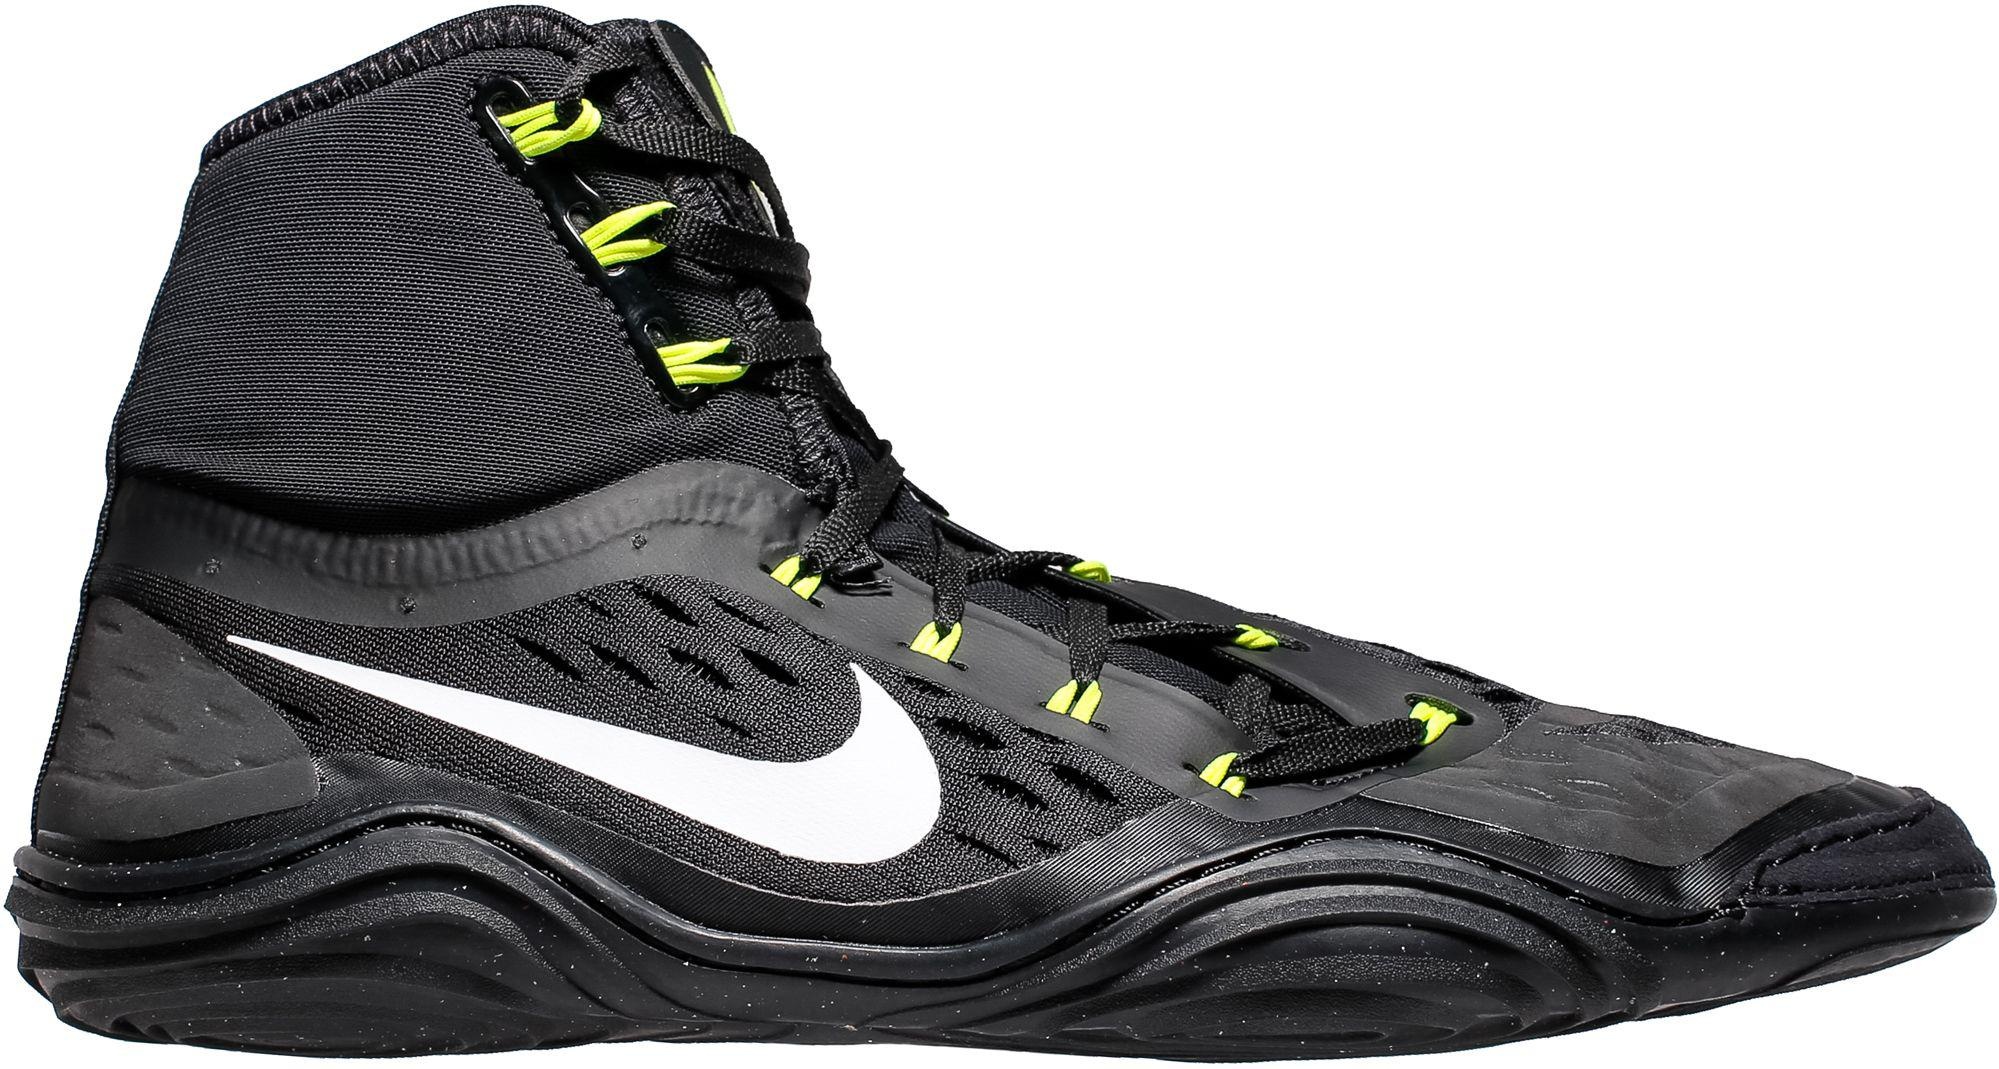 Lyst - Nike Hypersweep Wrestling Shoes in Black for Men 560d11d28